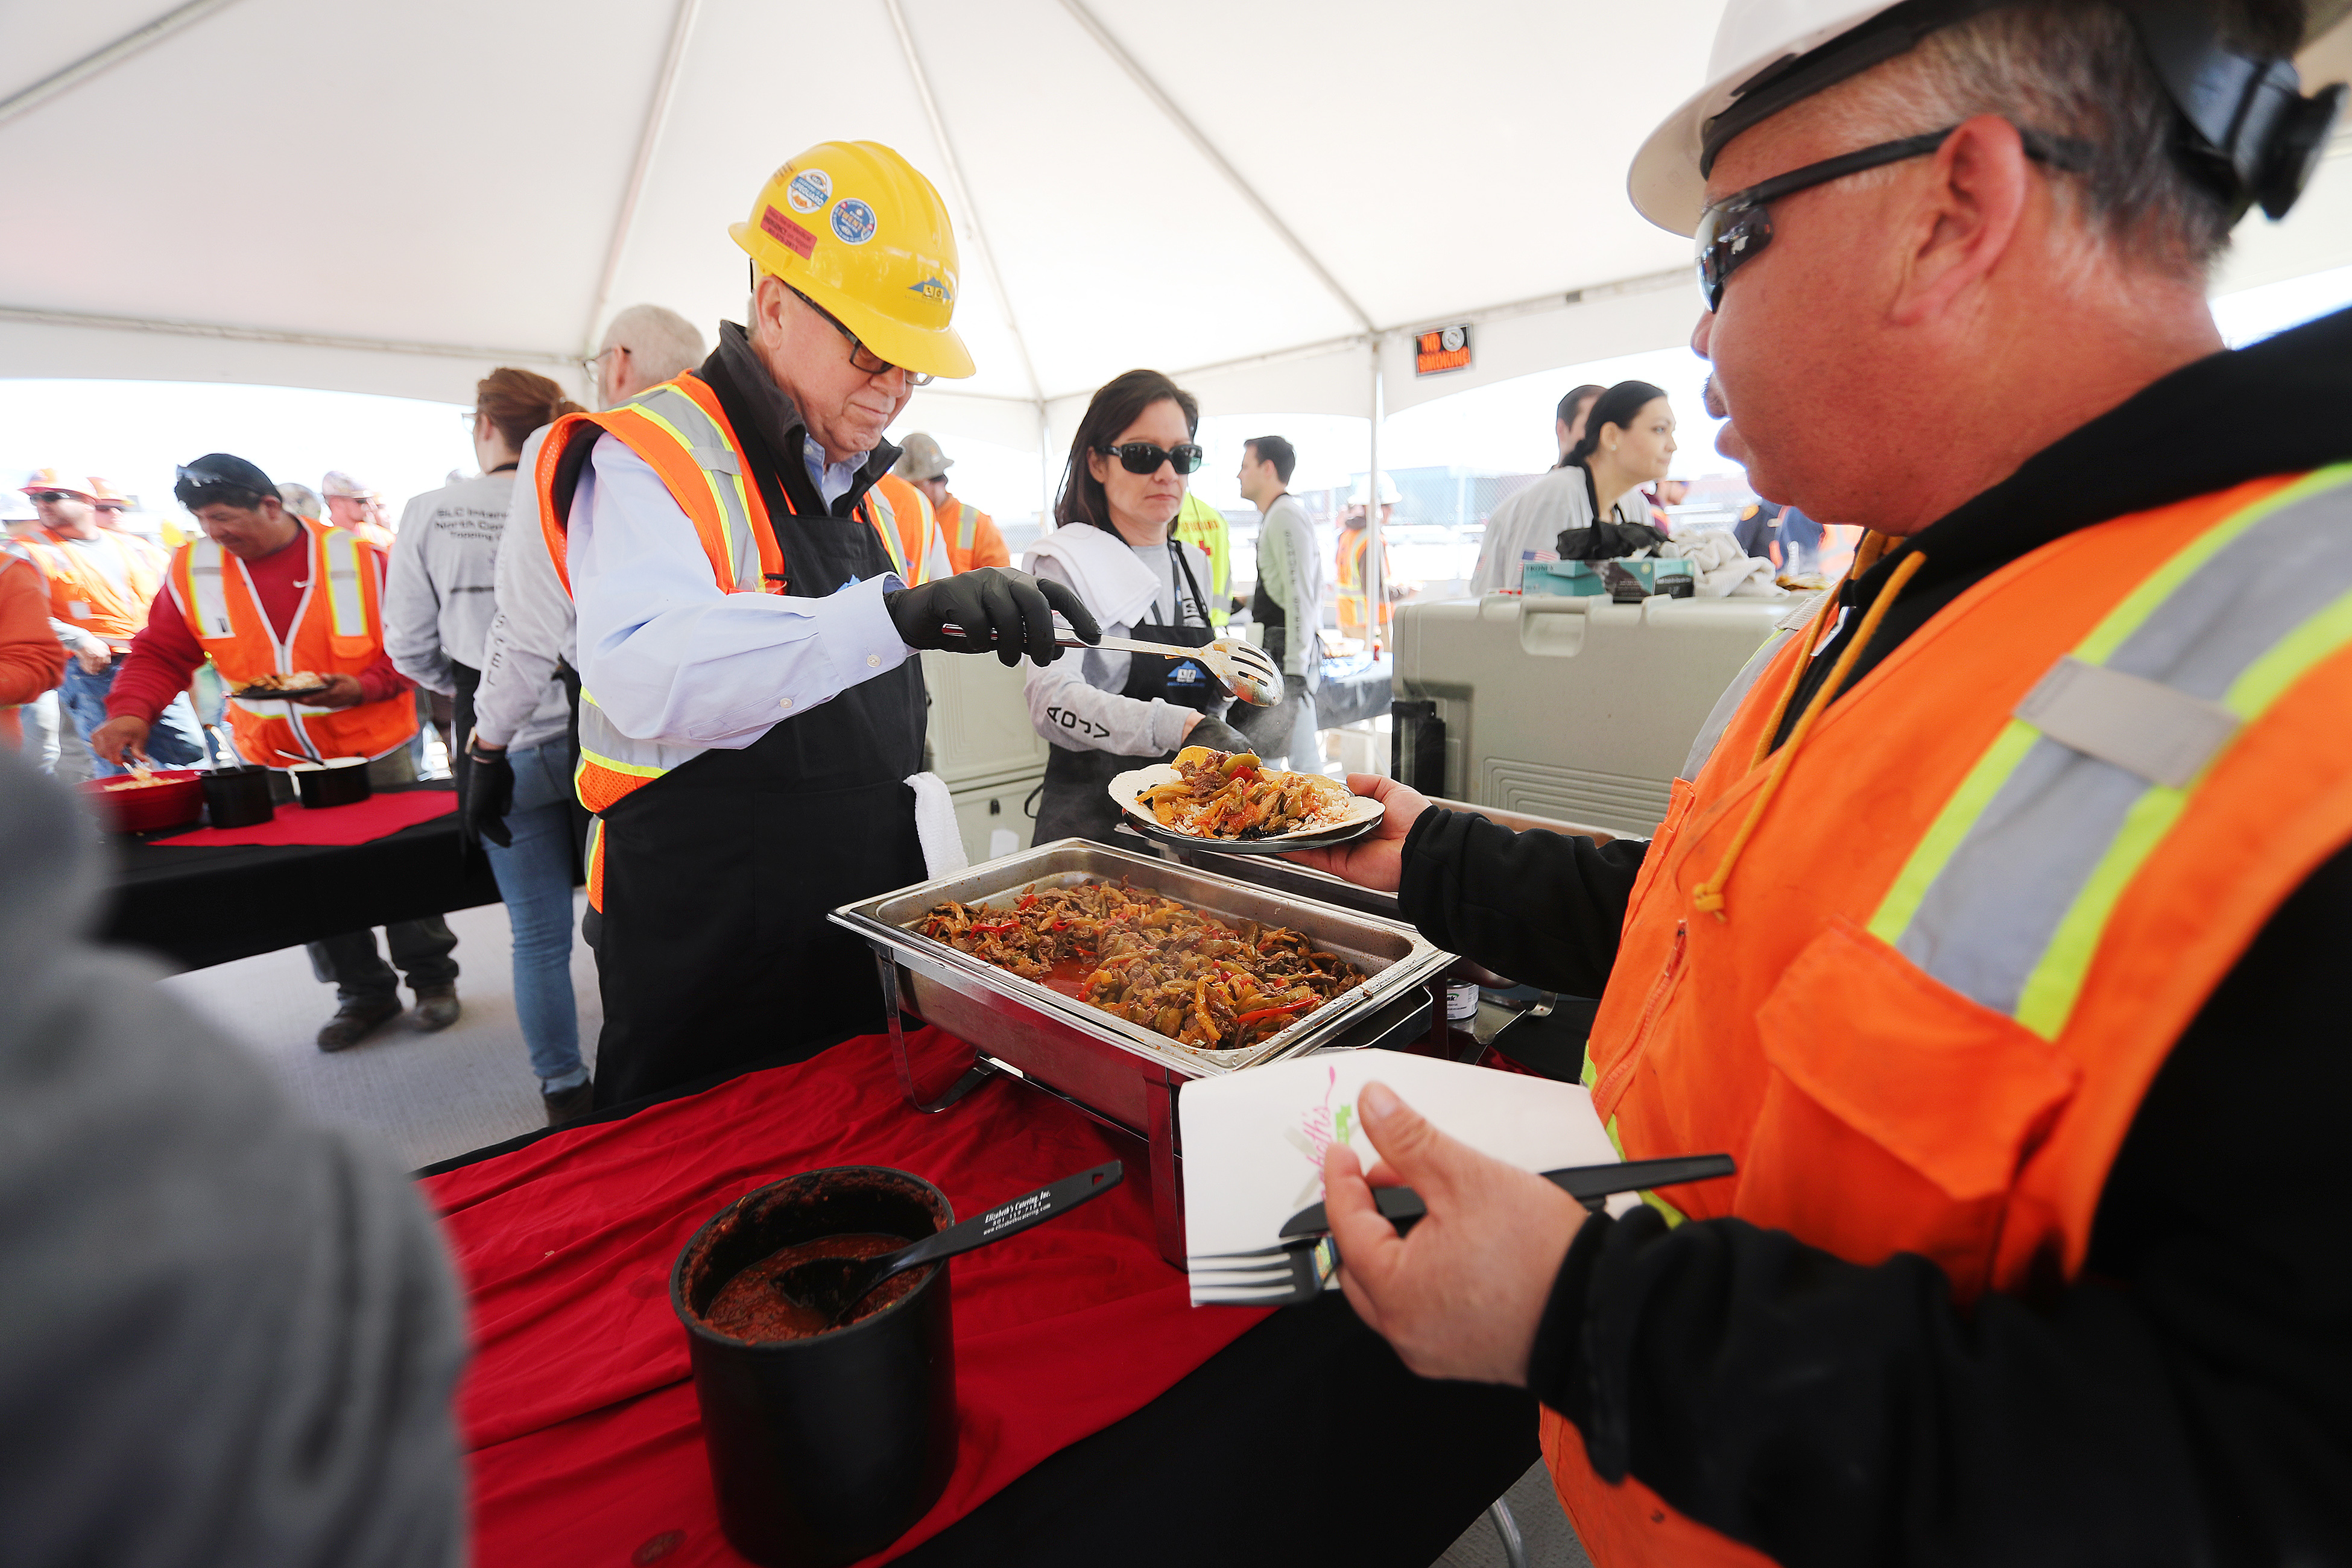 Workers on the Salt Lake City International Airport expansion project are treated to lunch following a topping-off ceremony in which the final beam was placed on the north concourse on Tuesday, March 19, 2019.